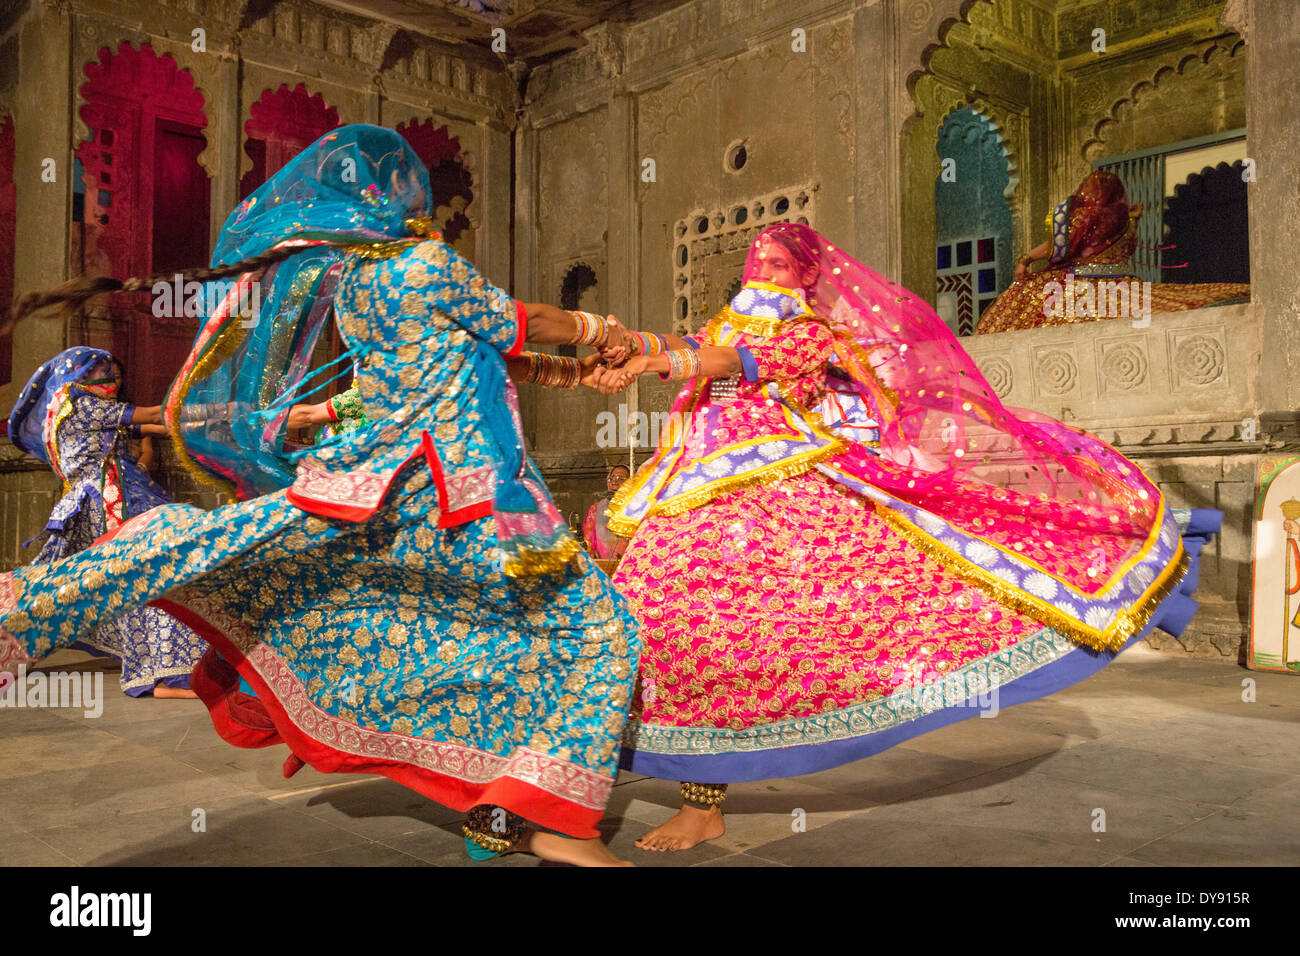 Dance performance show museum Bagore Ki Haveli Udaipur Rajasthan Asia India tradition folklore traditional national costumes, - Stock Image